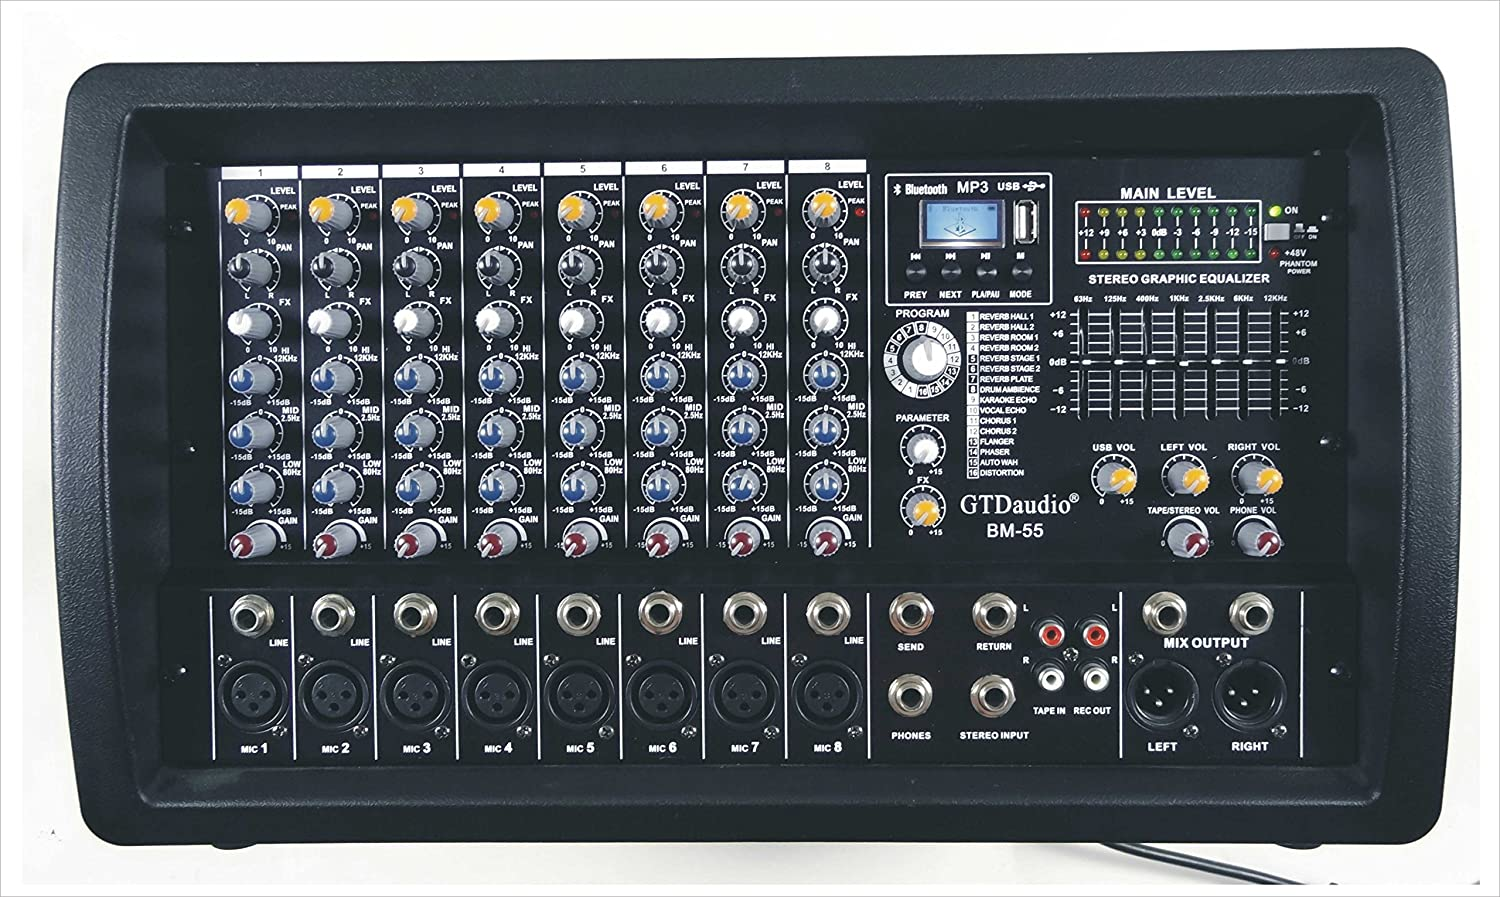 GTD-Audio 8 Channel 4000Watt Professional Powered Mixer Amplifier (1000 Watt RMS ) GTD Audio Inc BM-988